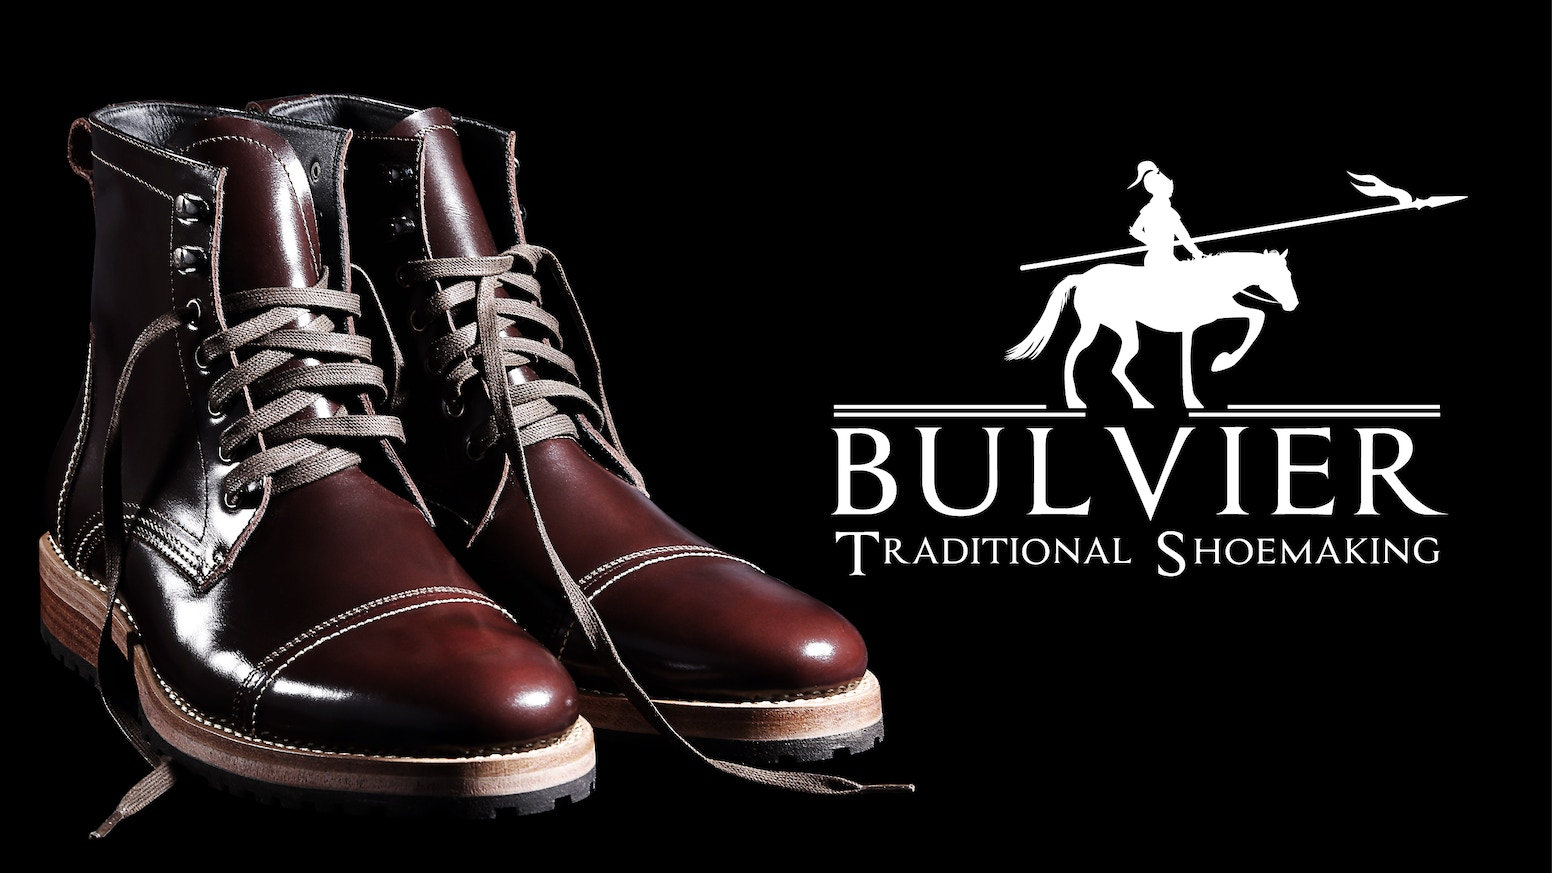 d008a0142 A versatile and durable premium leather boots that is design for style &  comfort. Free